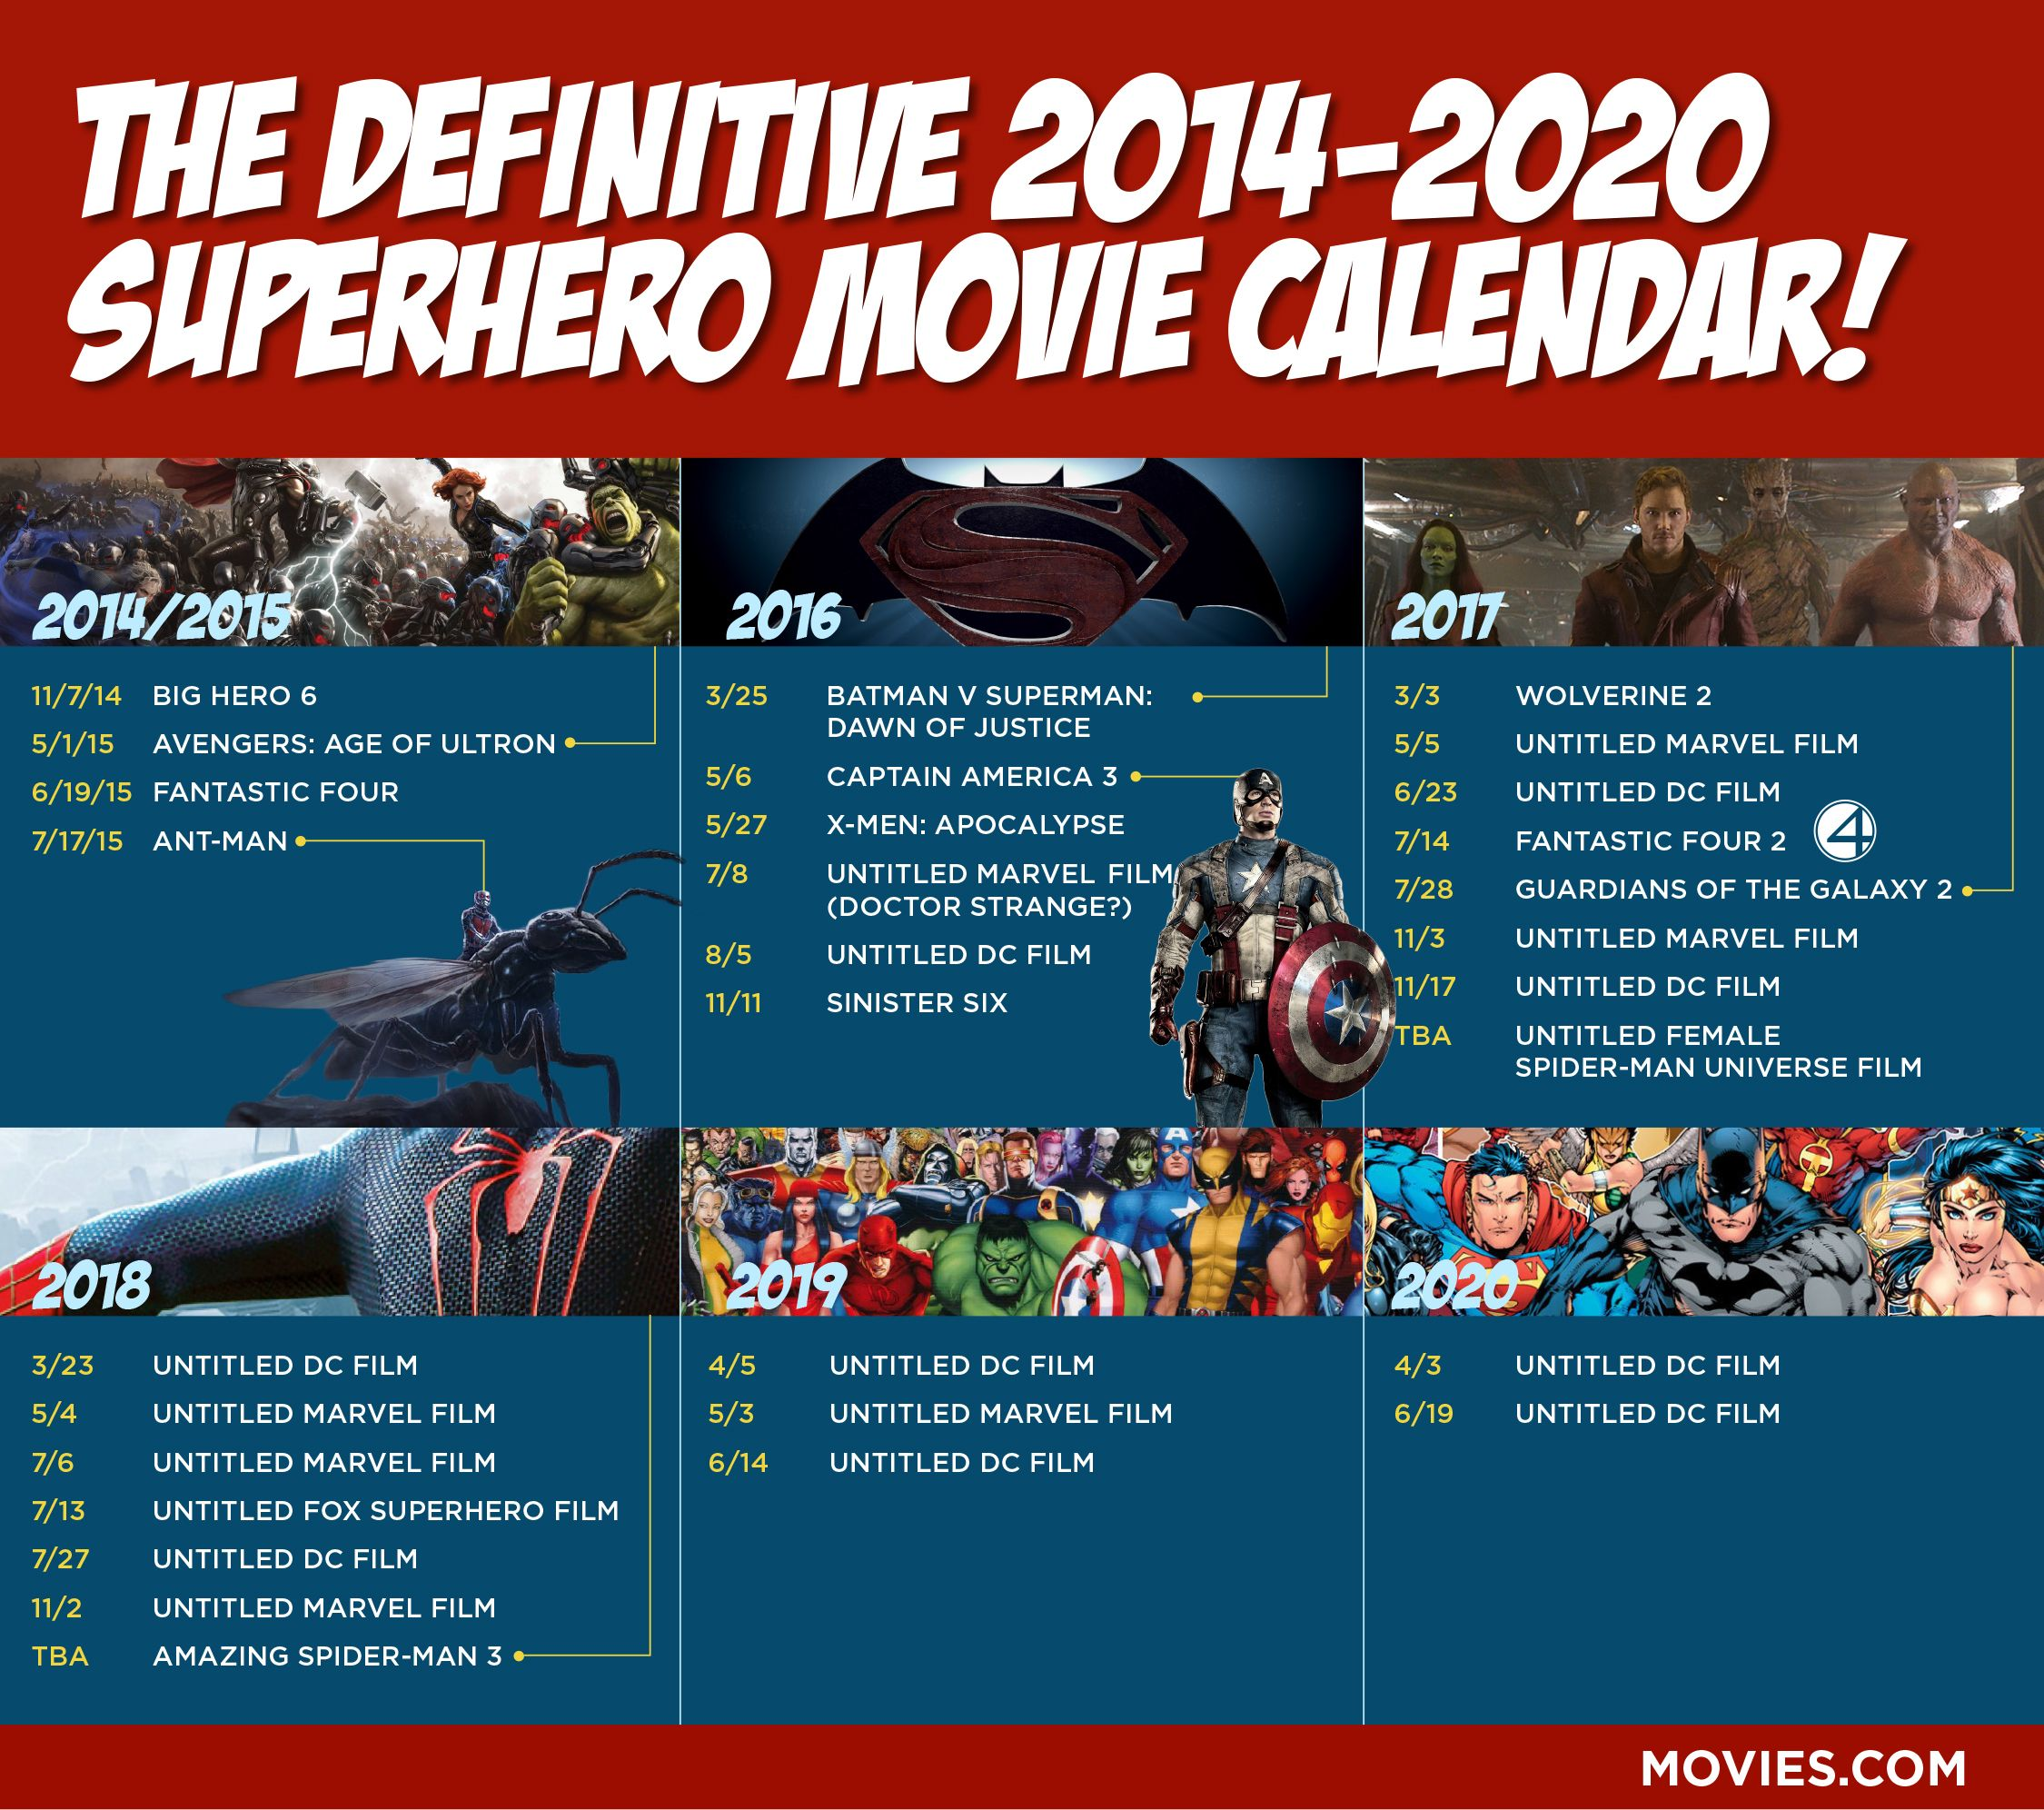 2014 & 2020 Calendar Here's Your Definitive 2014 2020 Superhero Movie Calendar | Movie